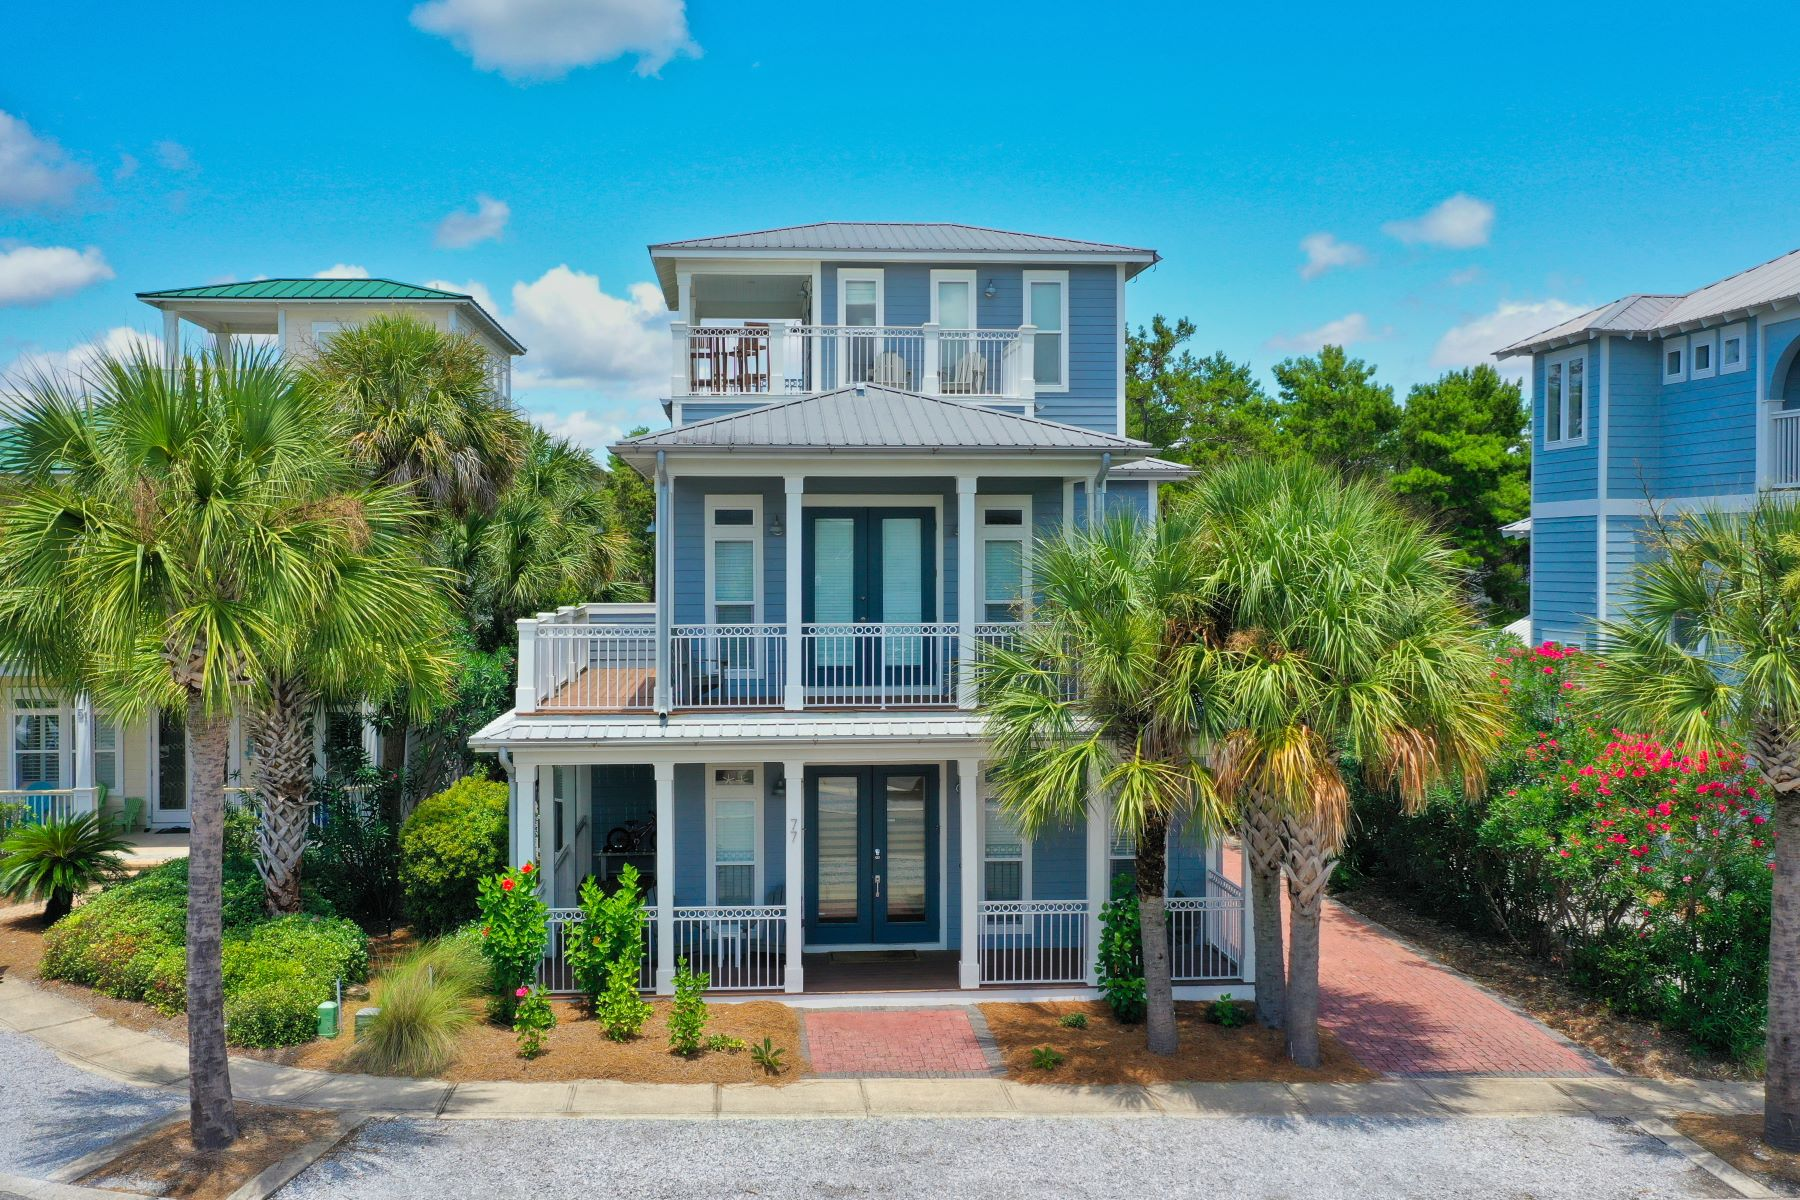 Single Family Homes for Active at Newly Remodeled Seacrest Beach Home Conveys Impeccably Furnished 77 East Cobia Run Seacrest, Florida 32461 United States